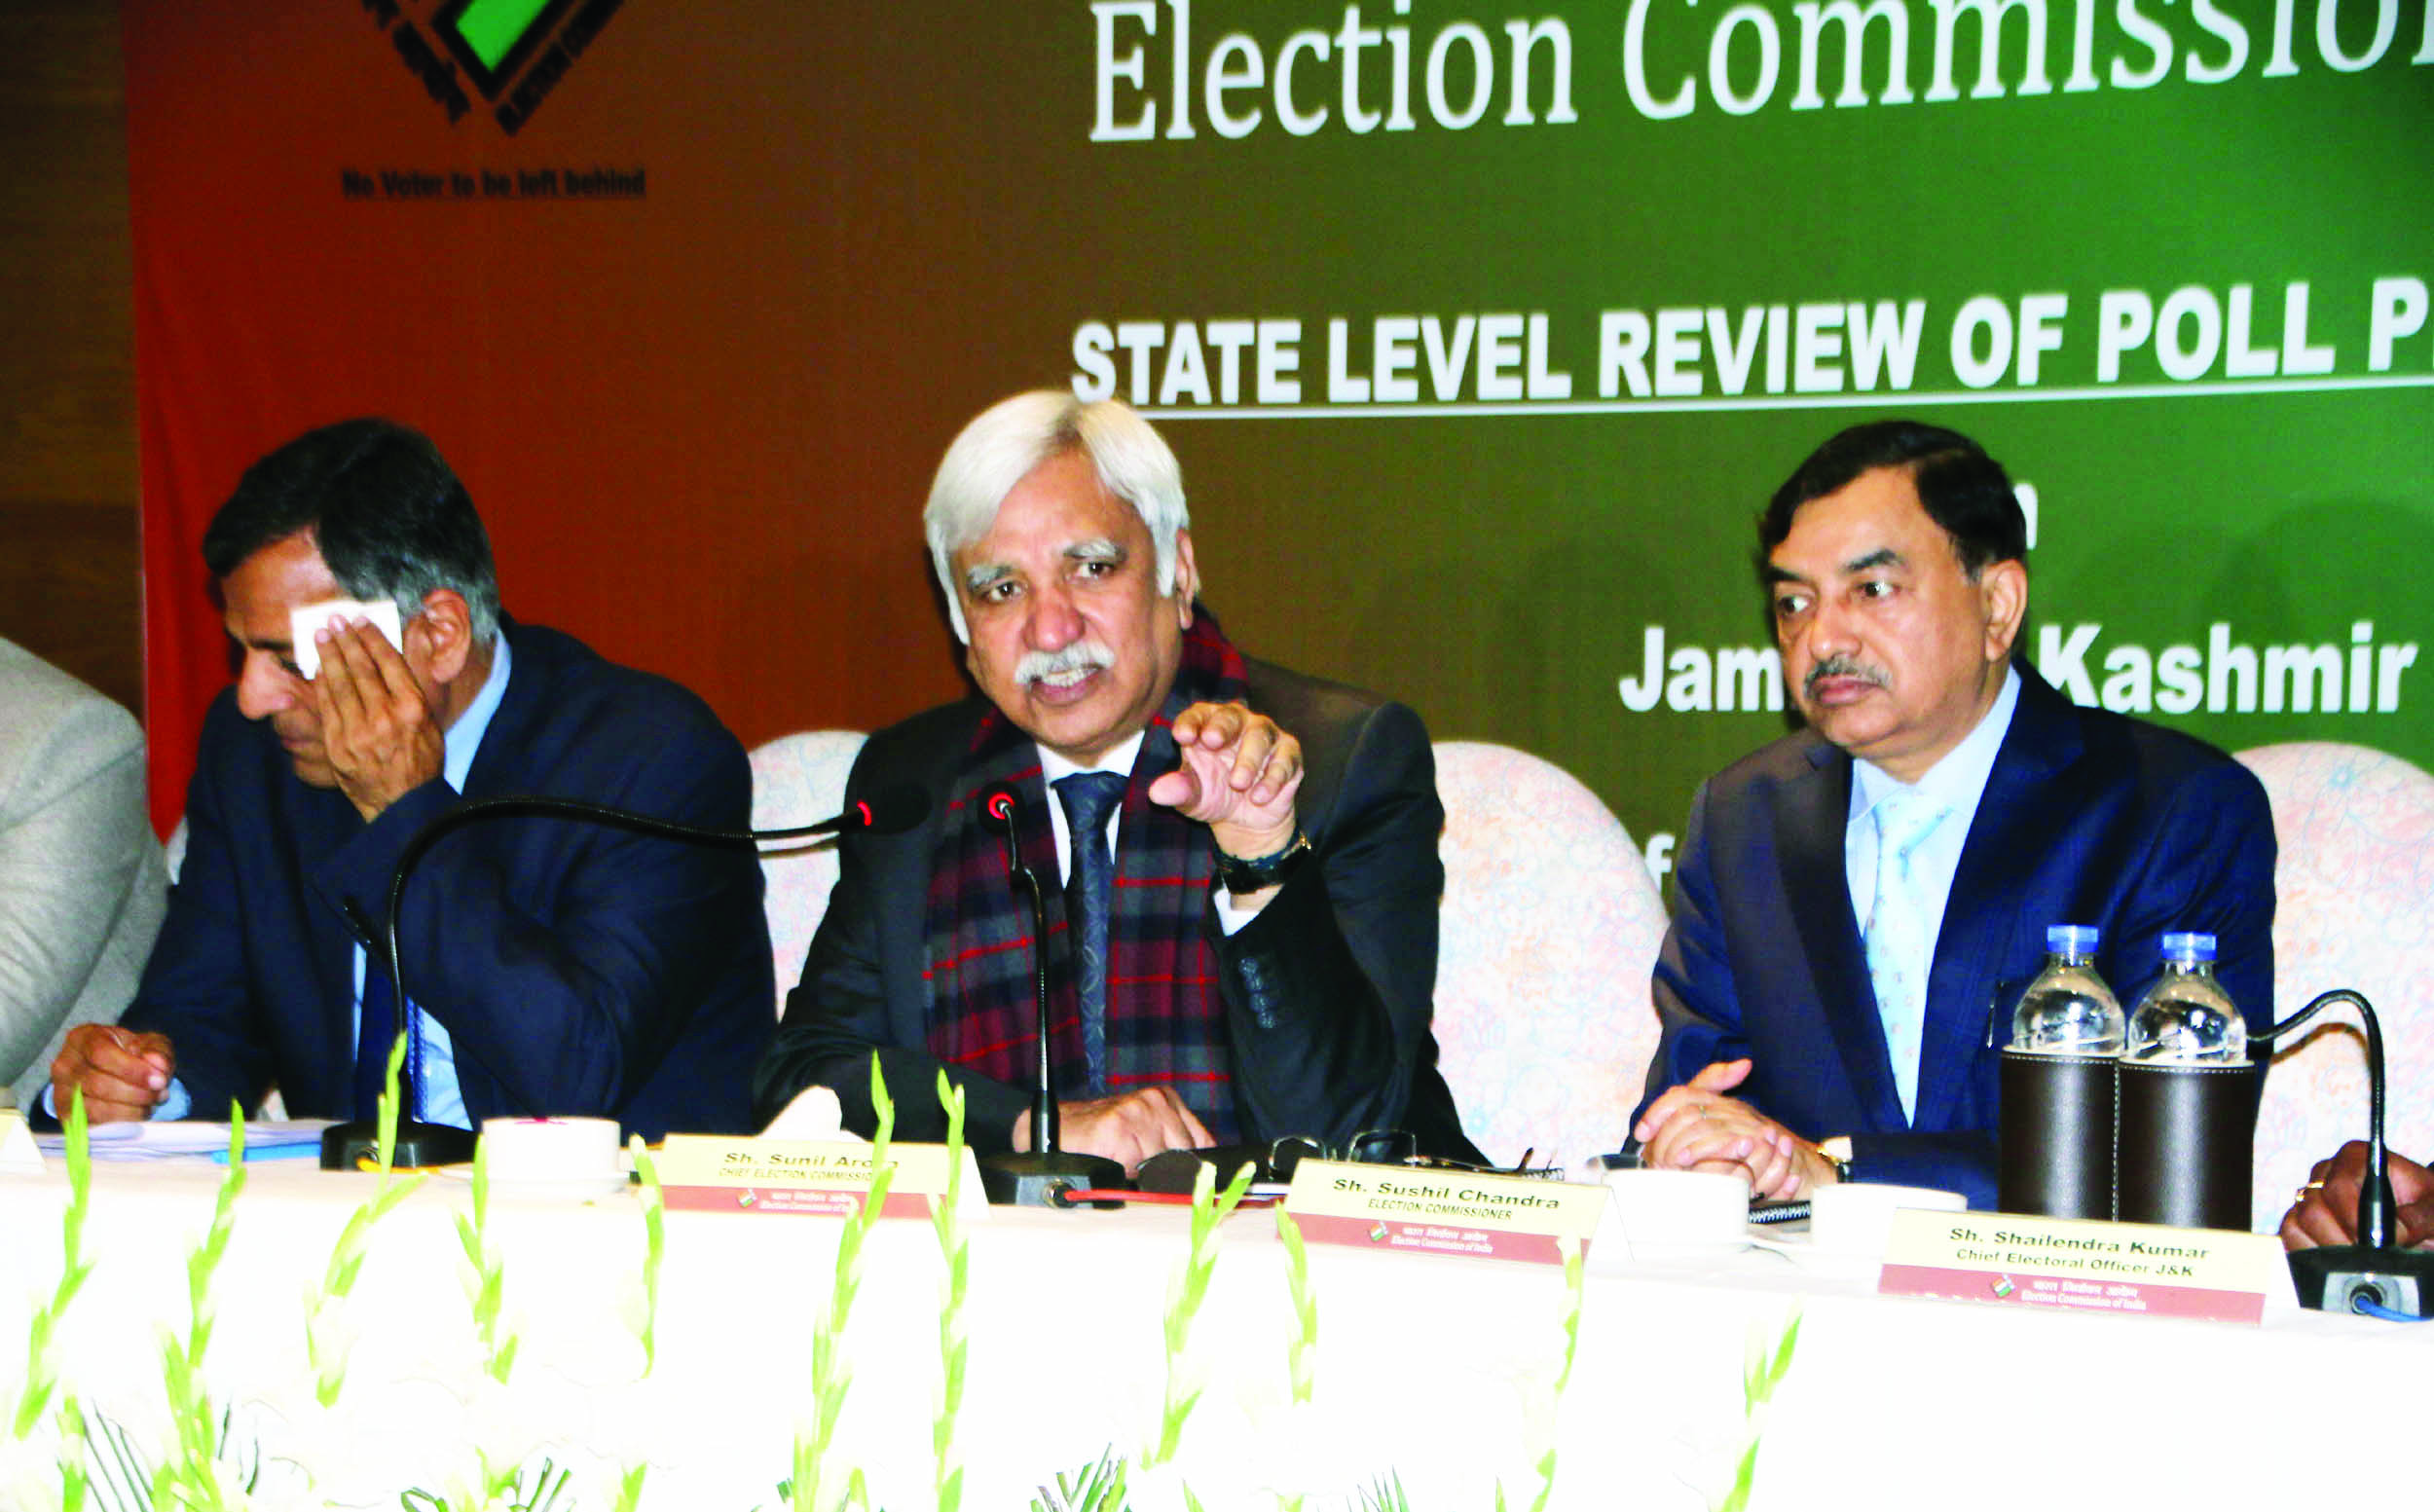 All political parties batted for joint polls in J&K